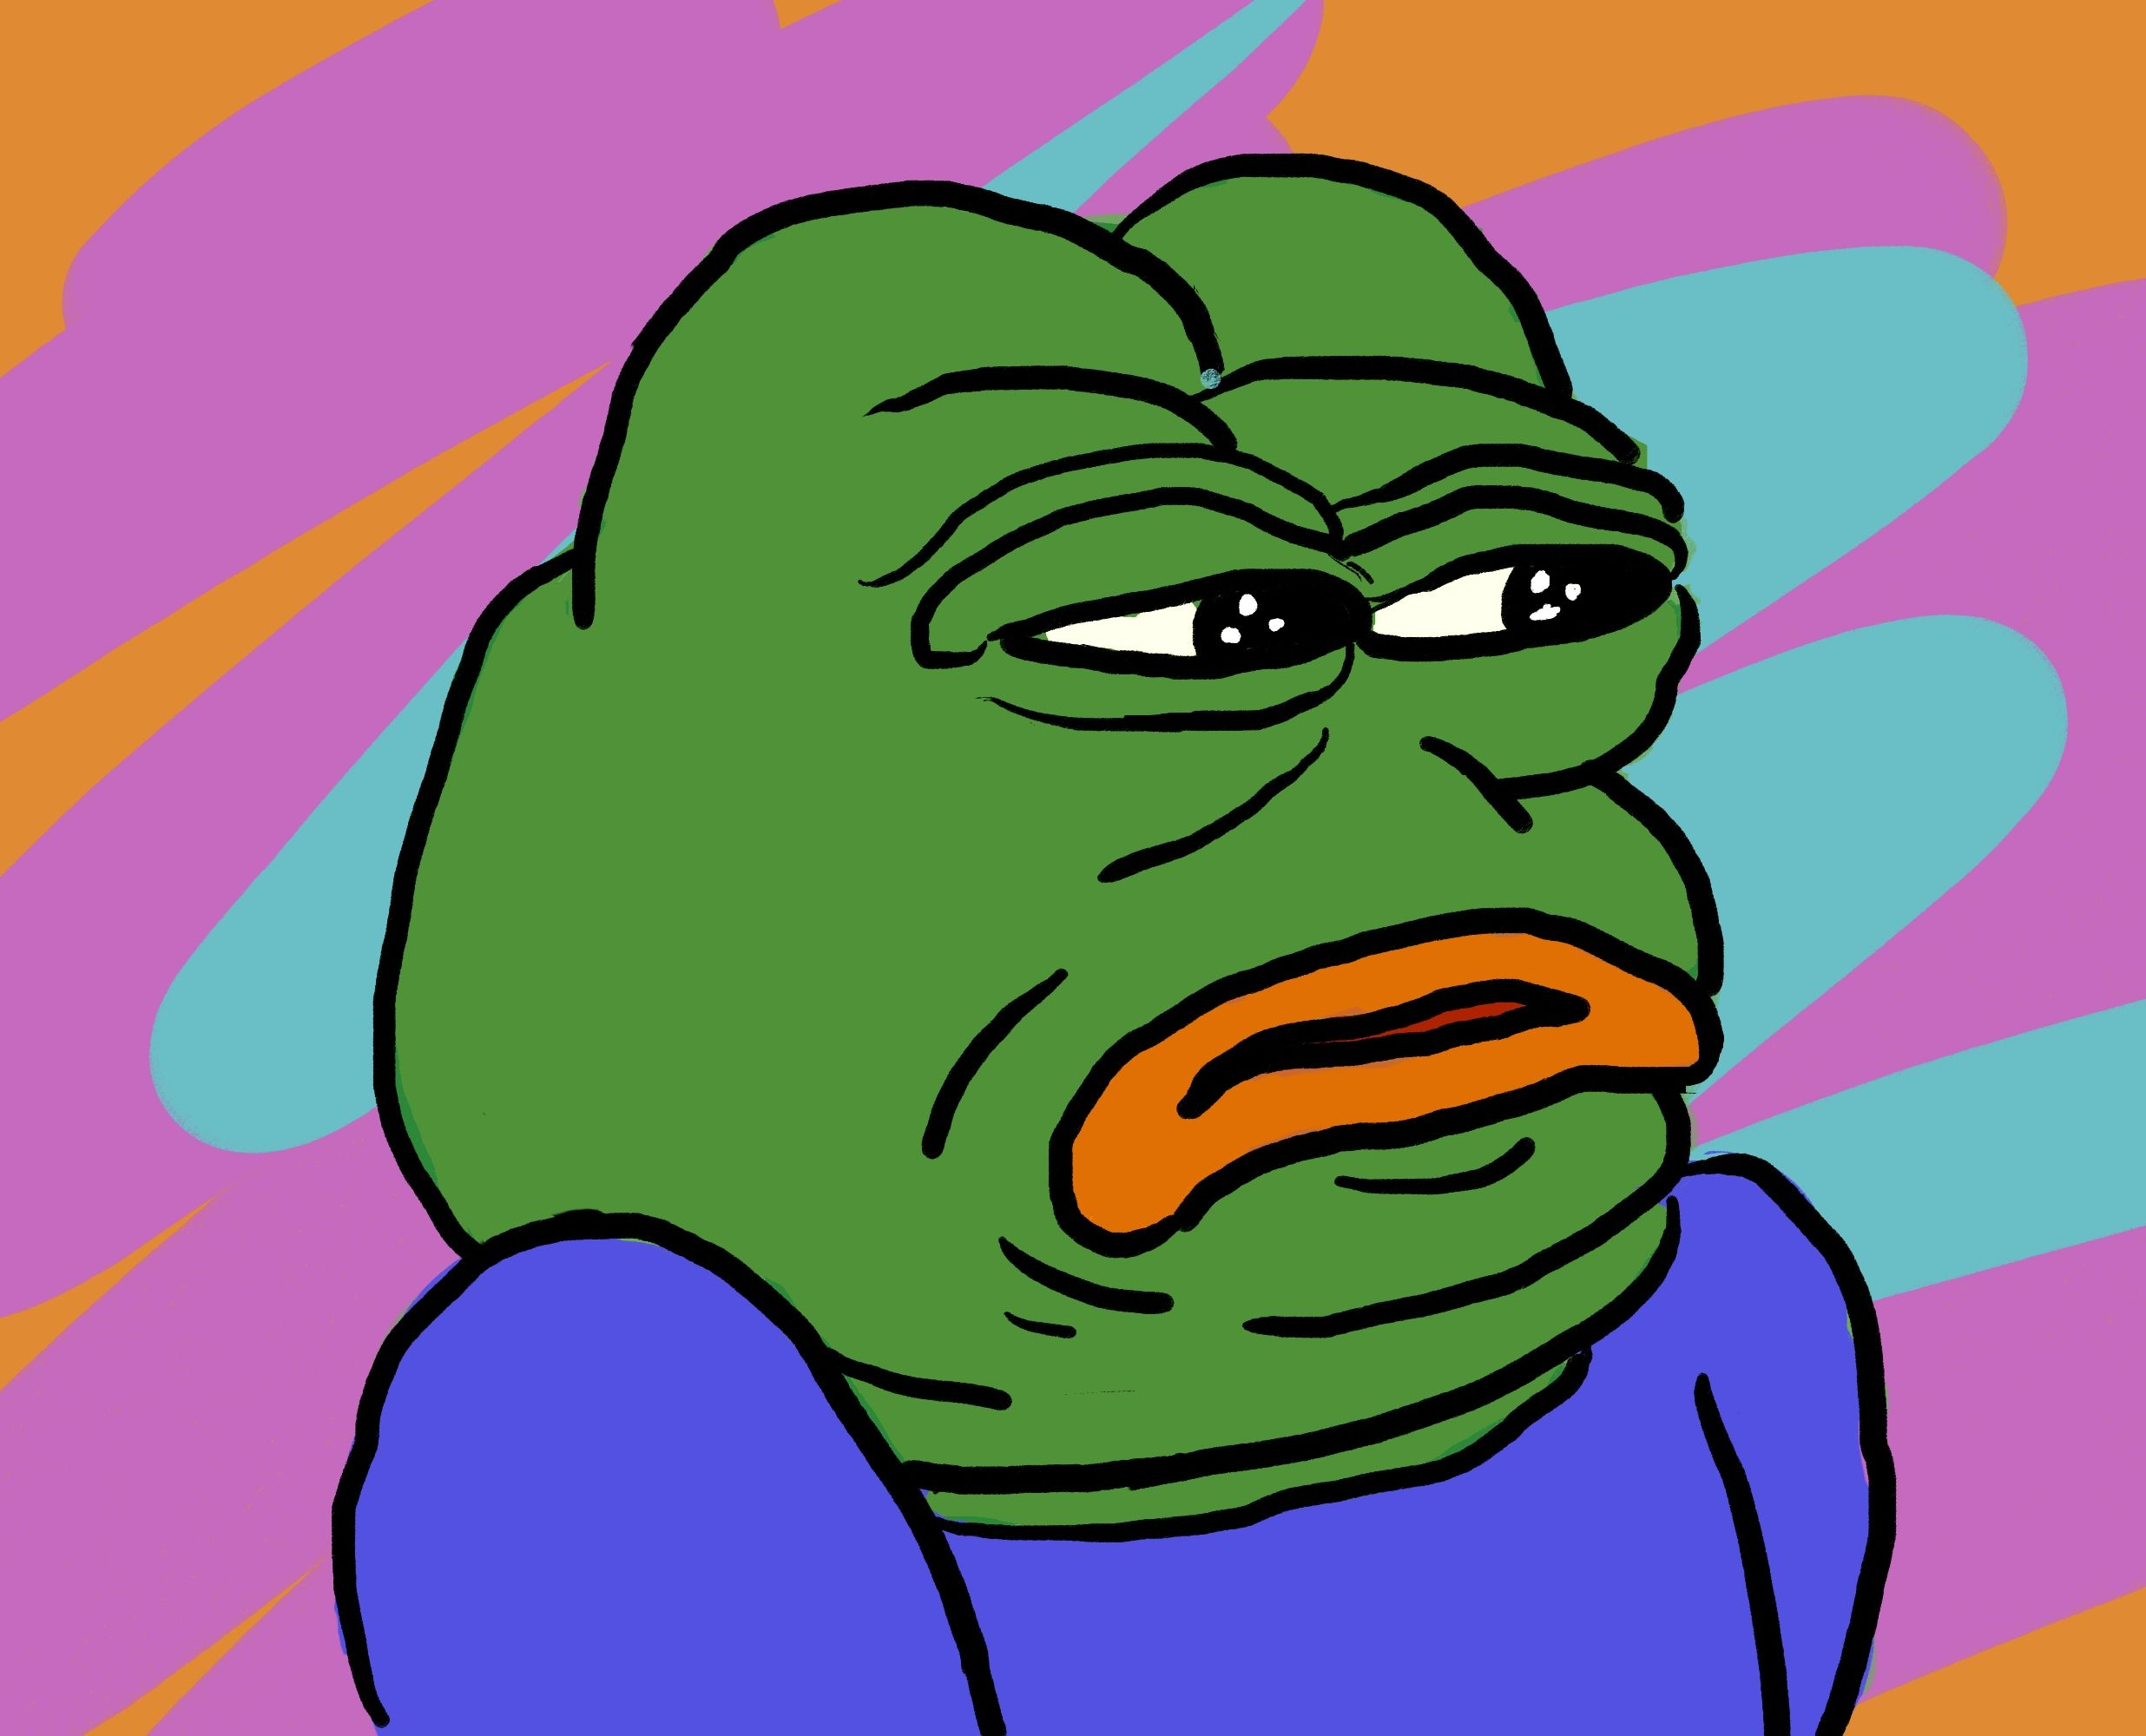 Pepe of Disgust - He appears every time you post cringe